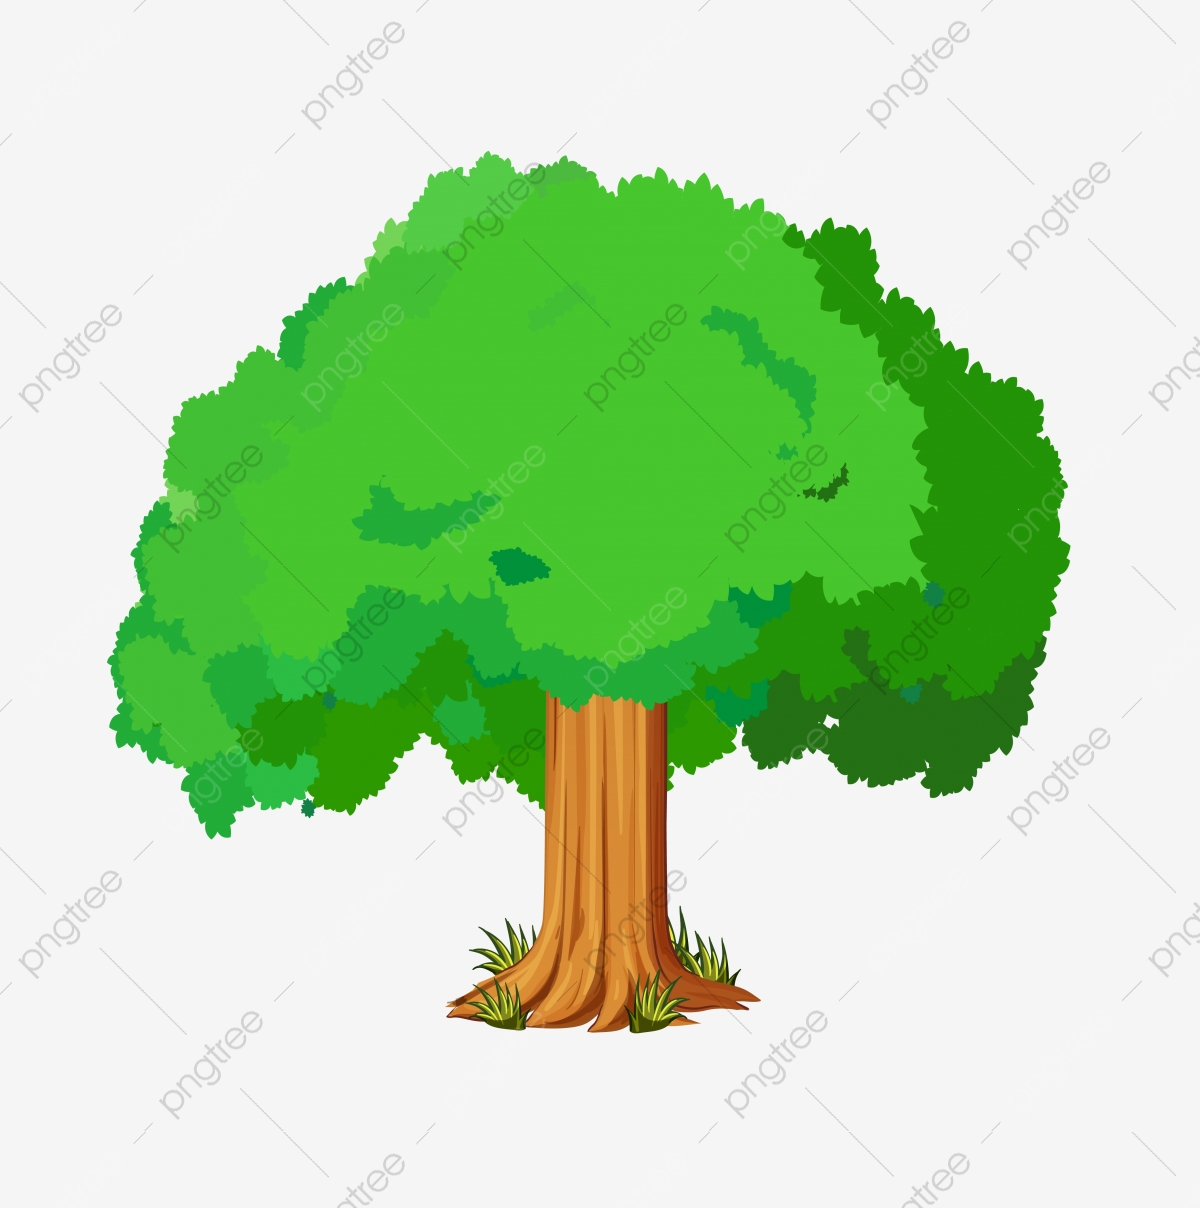 Hand Drawn Cartoon Tree Green Germination Small Tree Big Tree Png And Vector With Transparent Background For Free Download